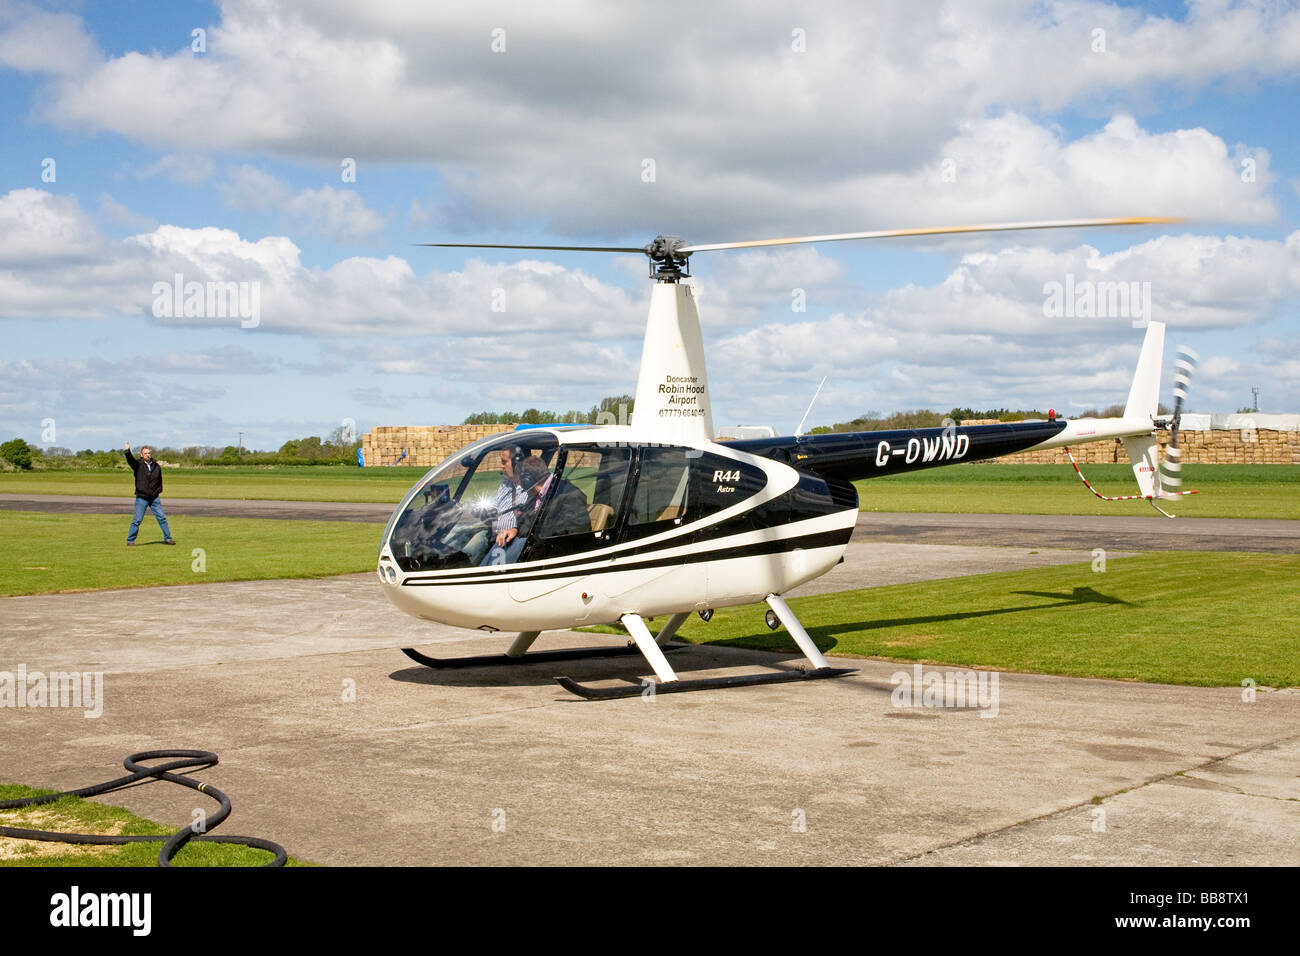 Robinson R44 Astro G-OWND about to depart at Breighton Airfield - Stock Image